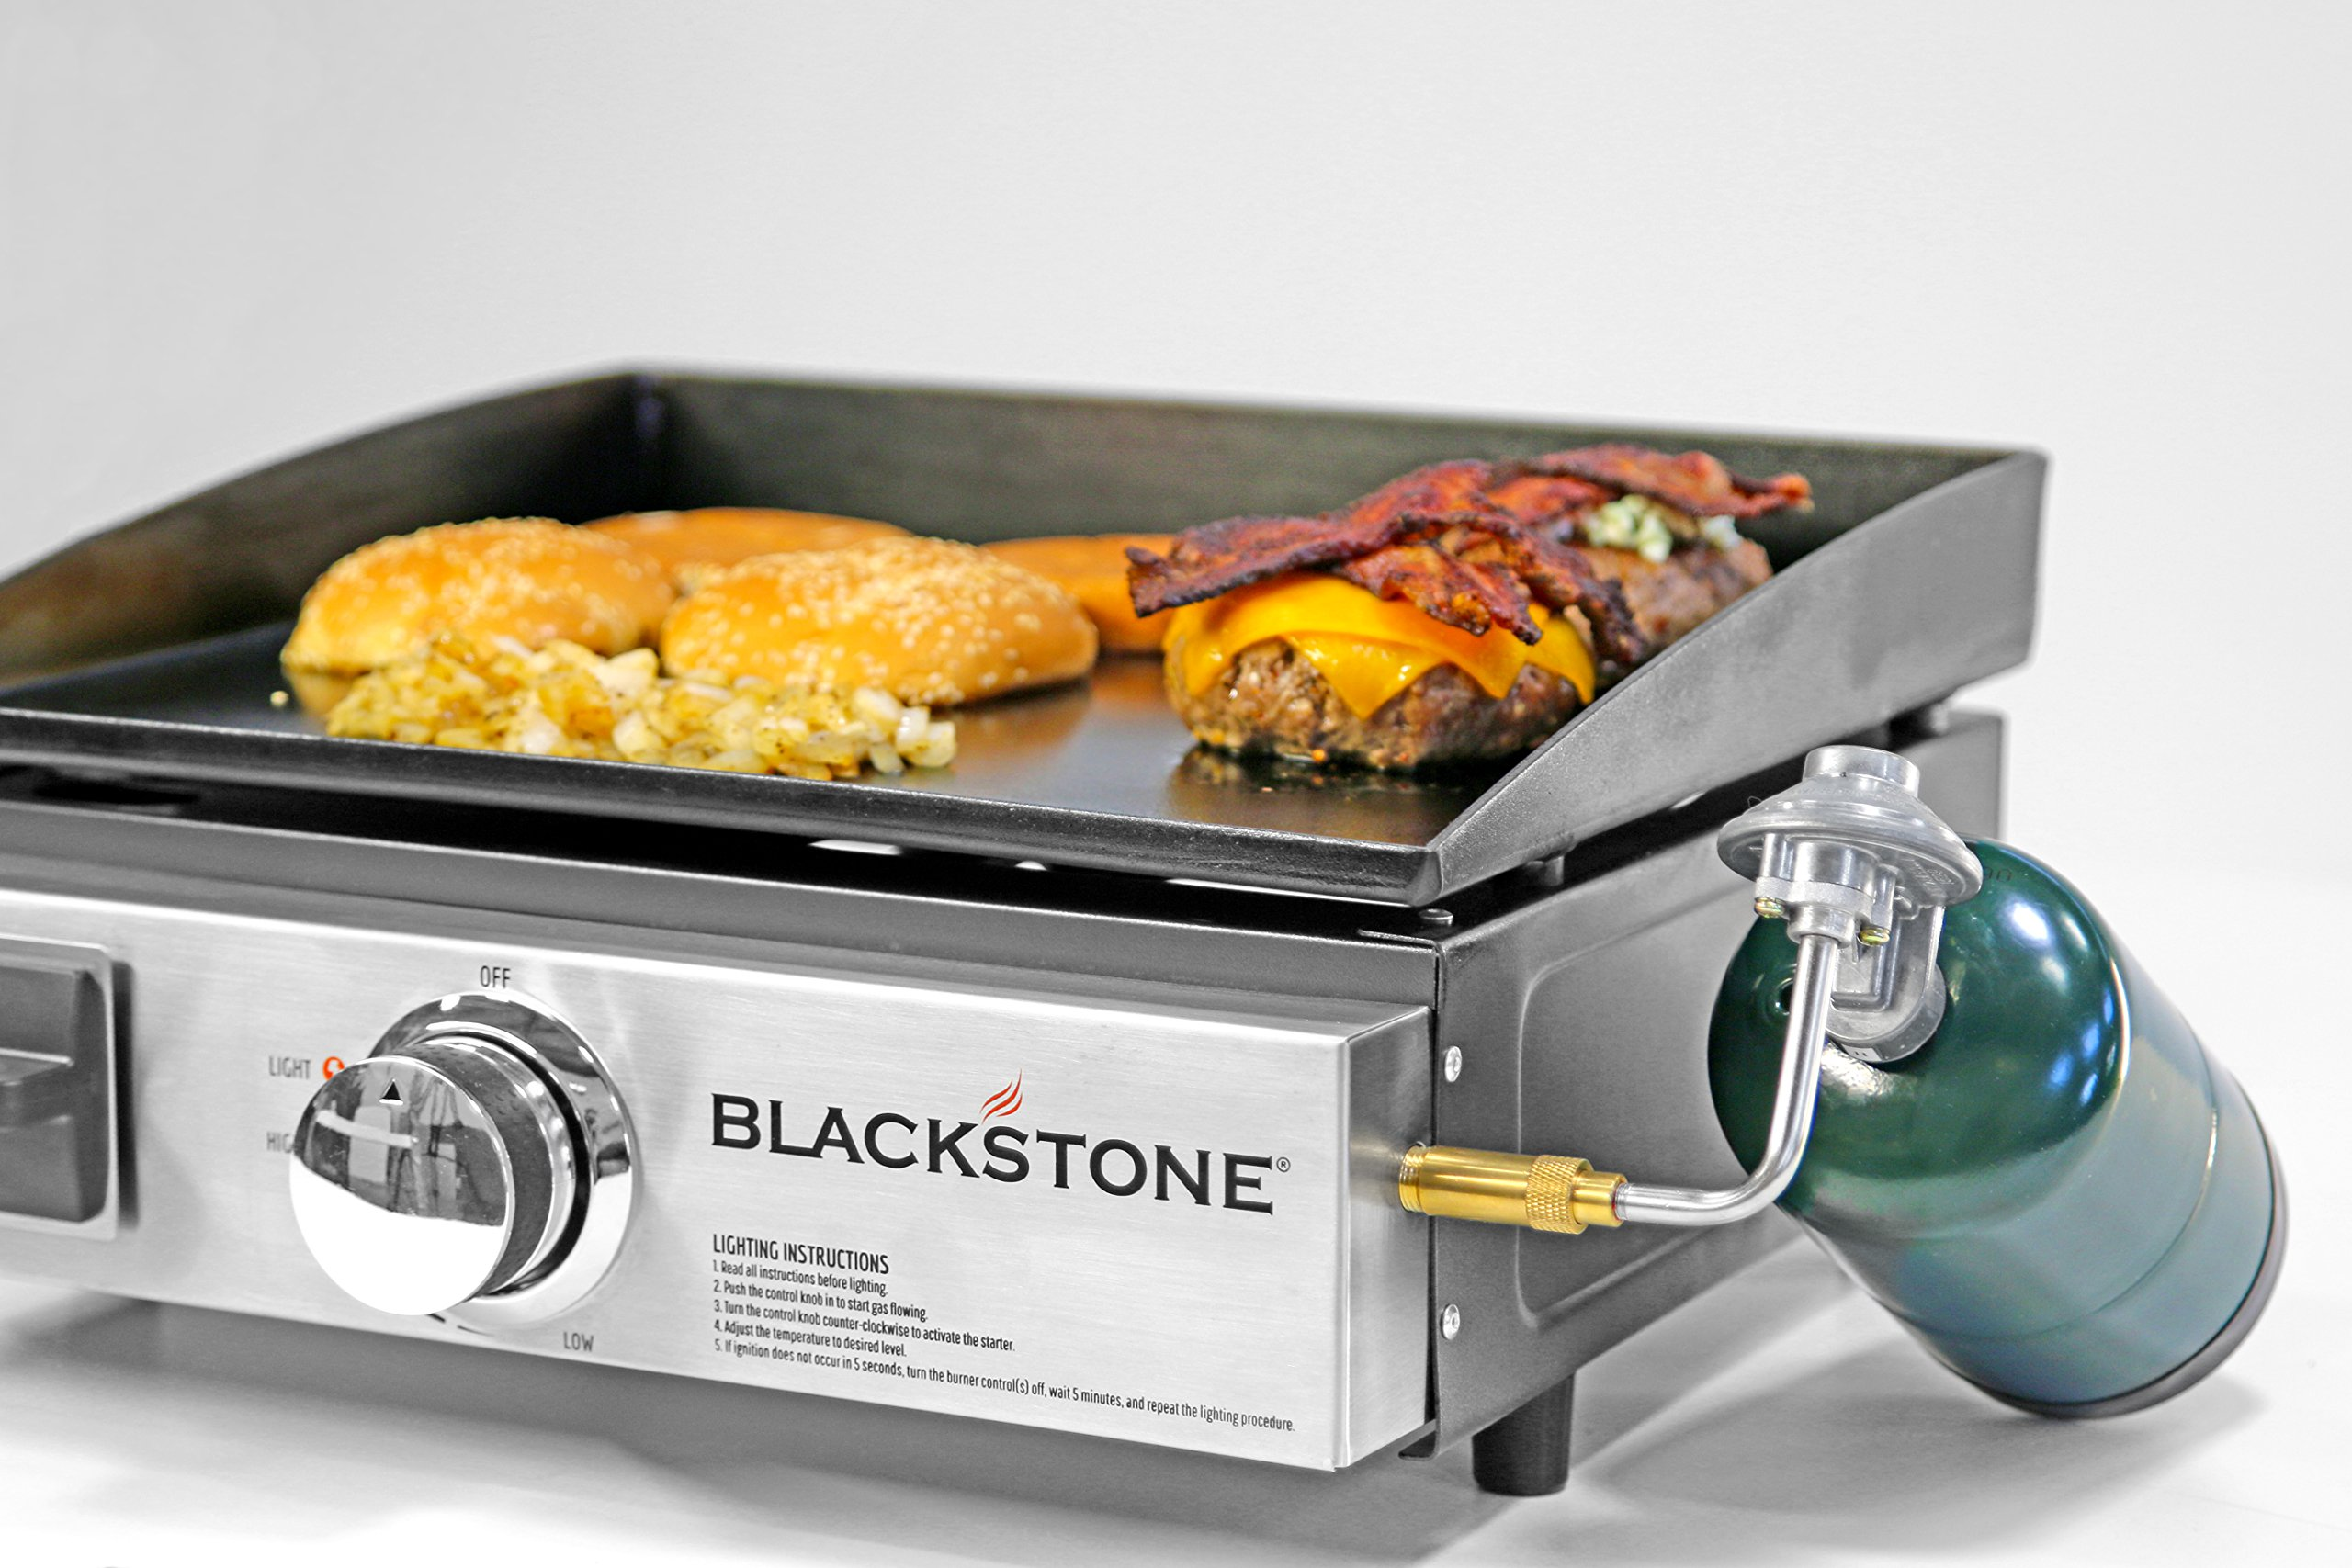 Blackstone Table Top Grill - 17 Inch Portable Gas Griddle - Propane Fueled - For Outdoor Cooking While Camping, Tailgating or Picnicking by Blackstone